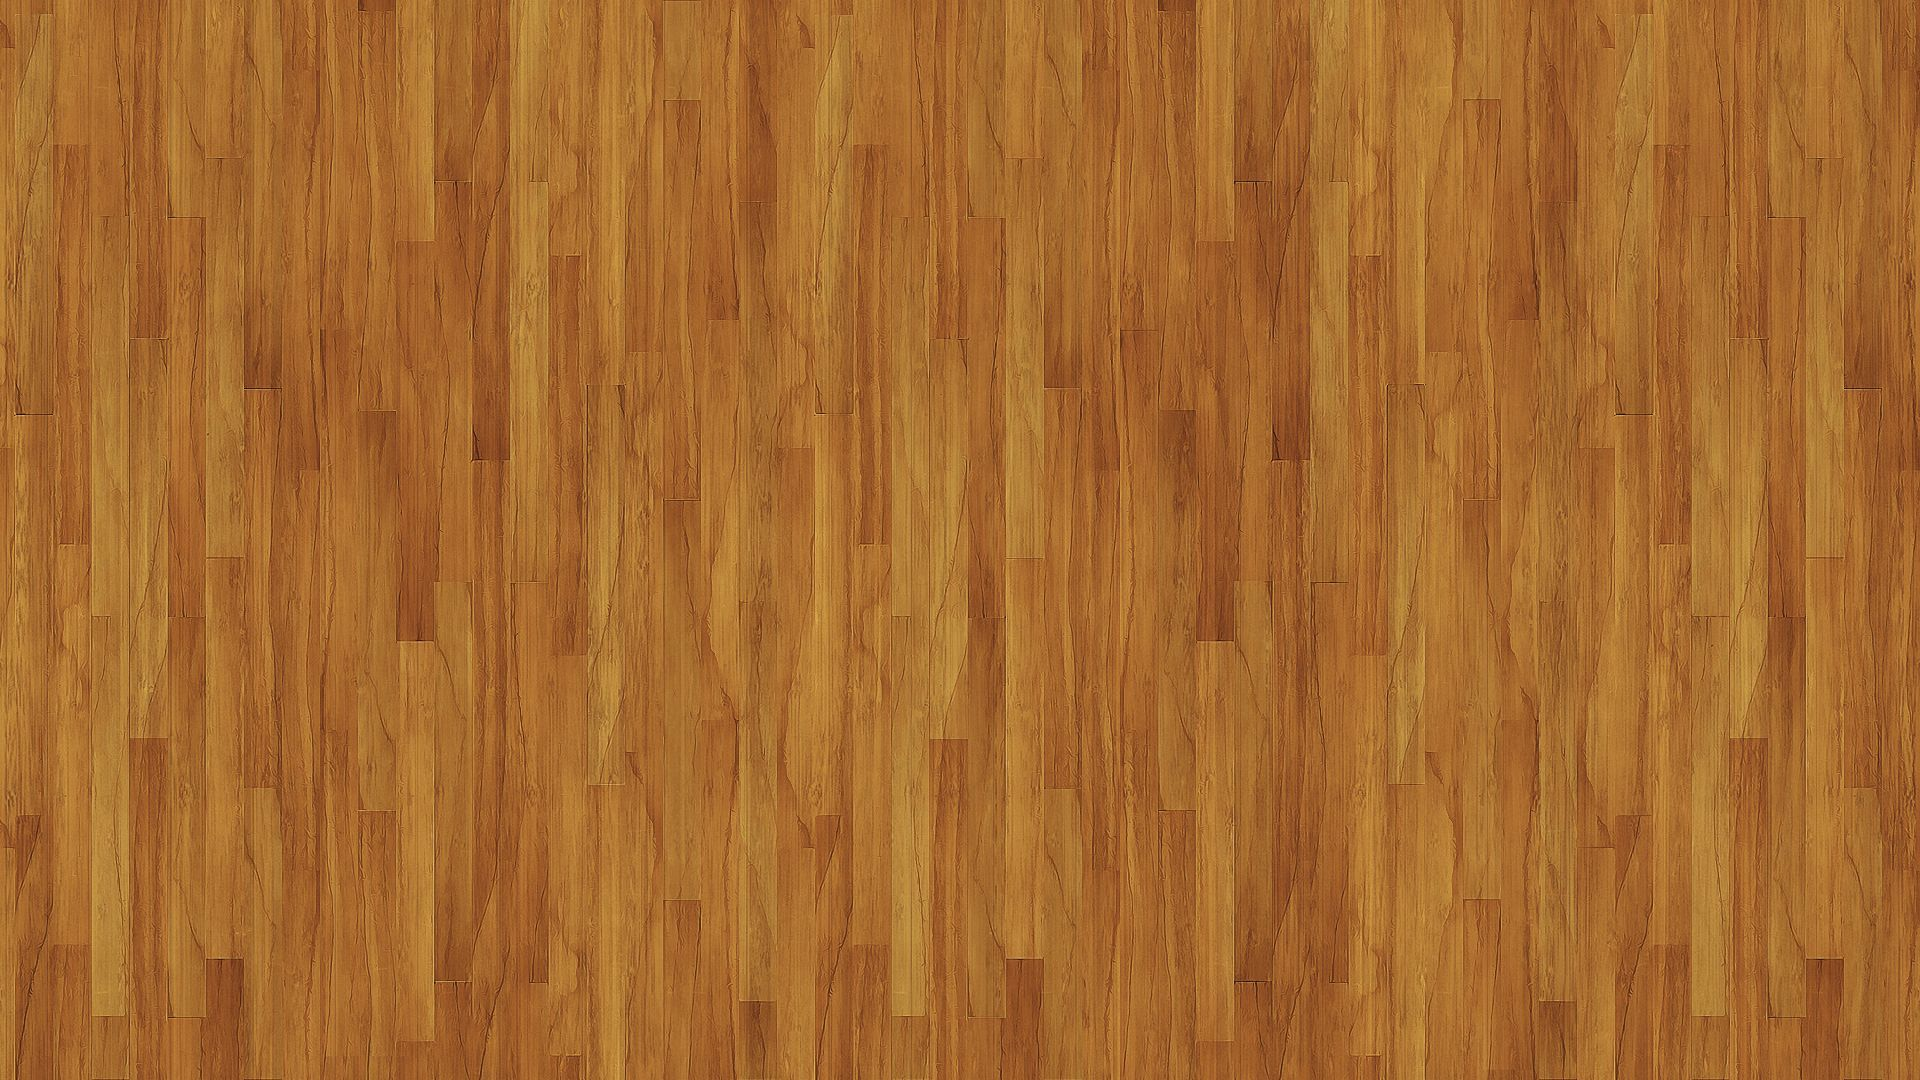 35 HD Wood WallpapersBackgrounds For Free Download